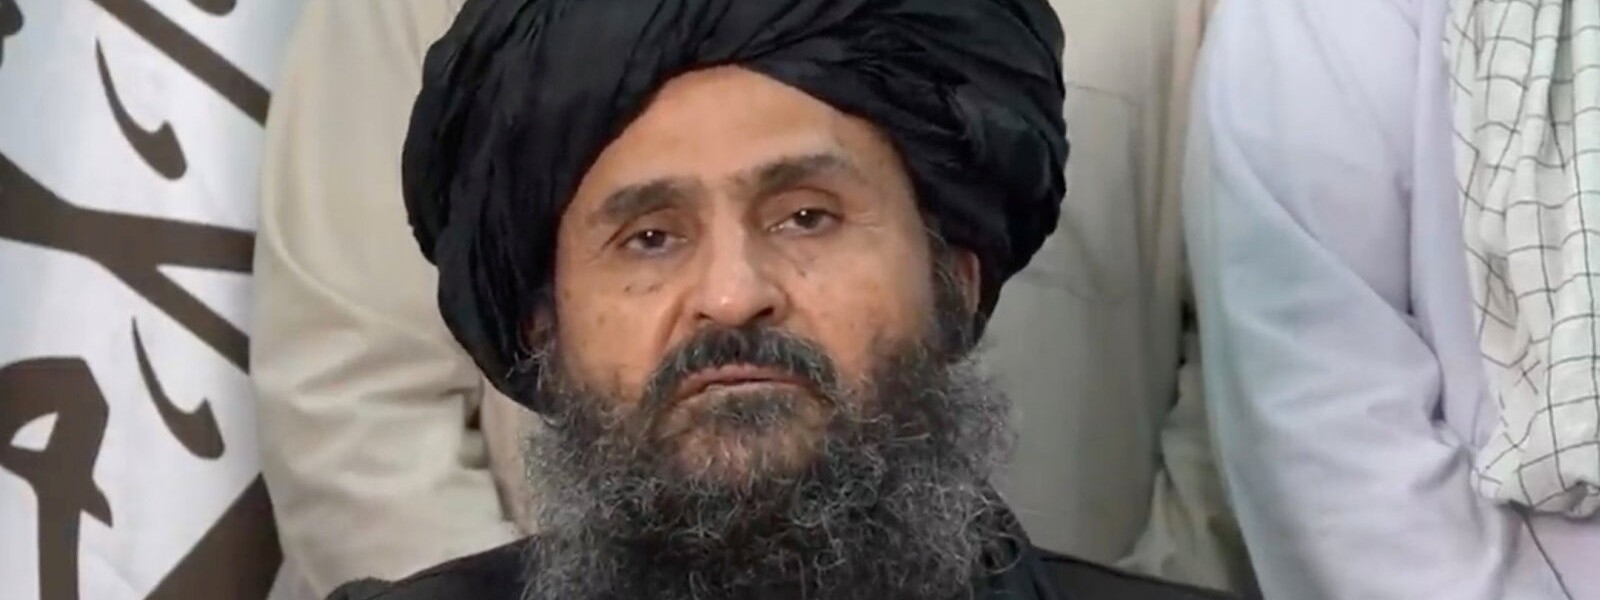 Founder of Taliban returns to Afghanistan